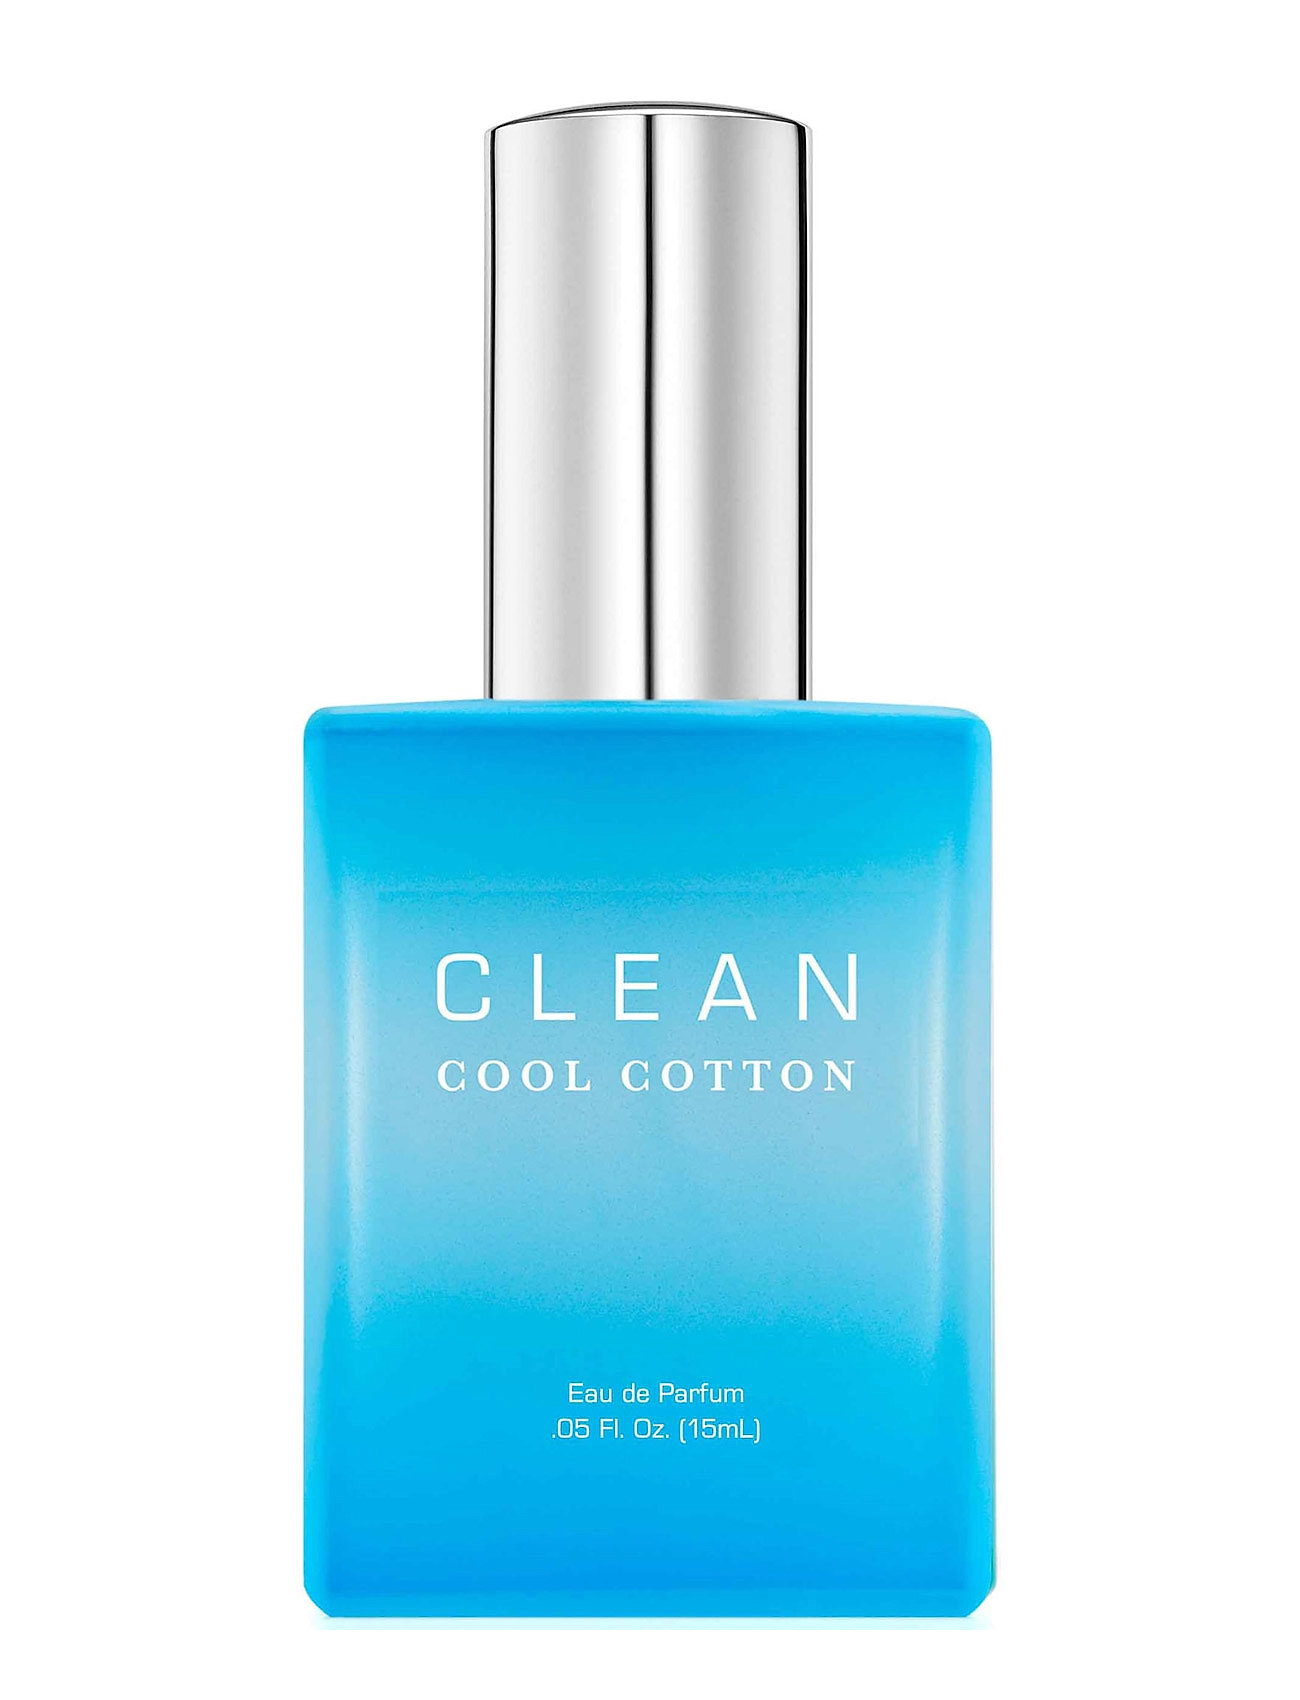 clean – Clean cool cotton edp, 15ml på boozt.com dk